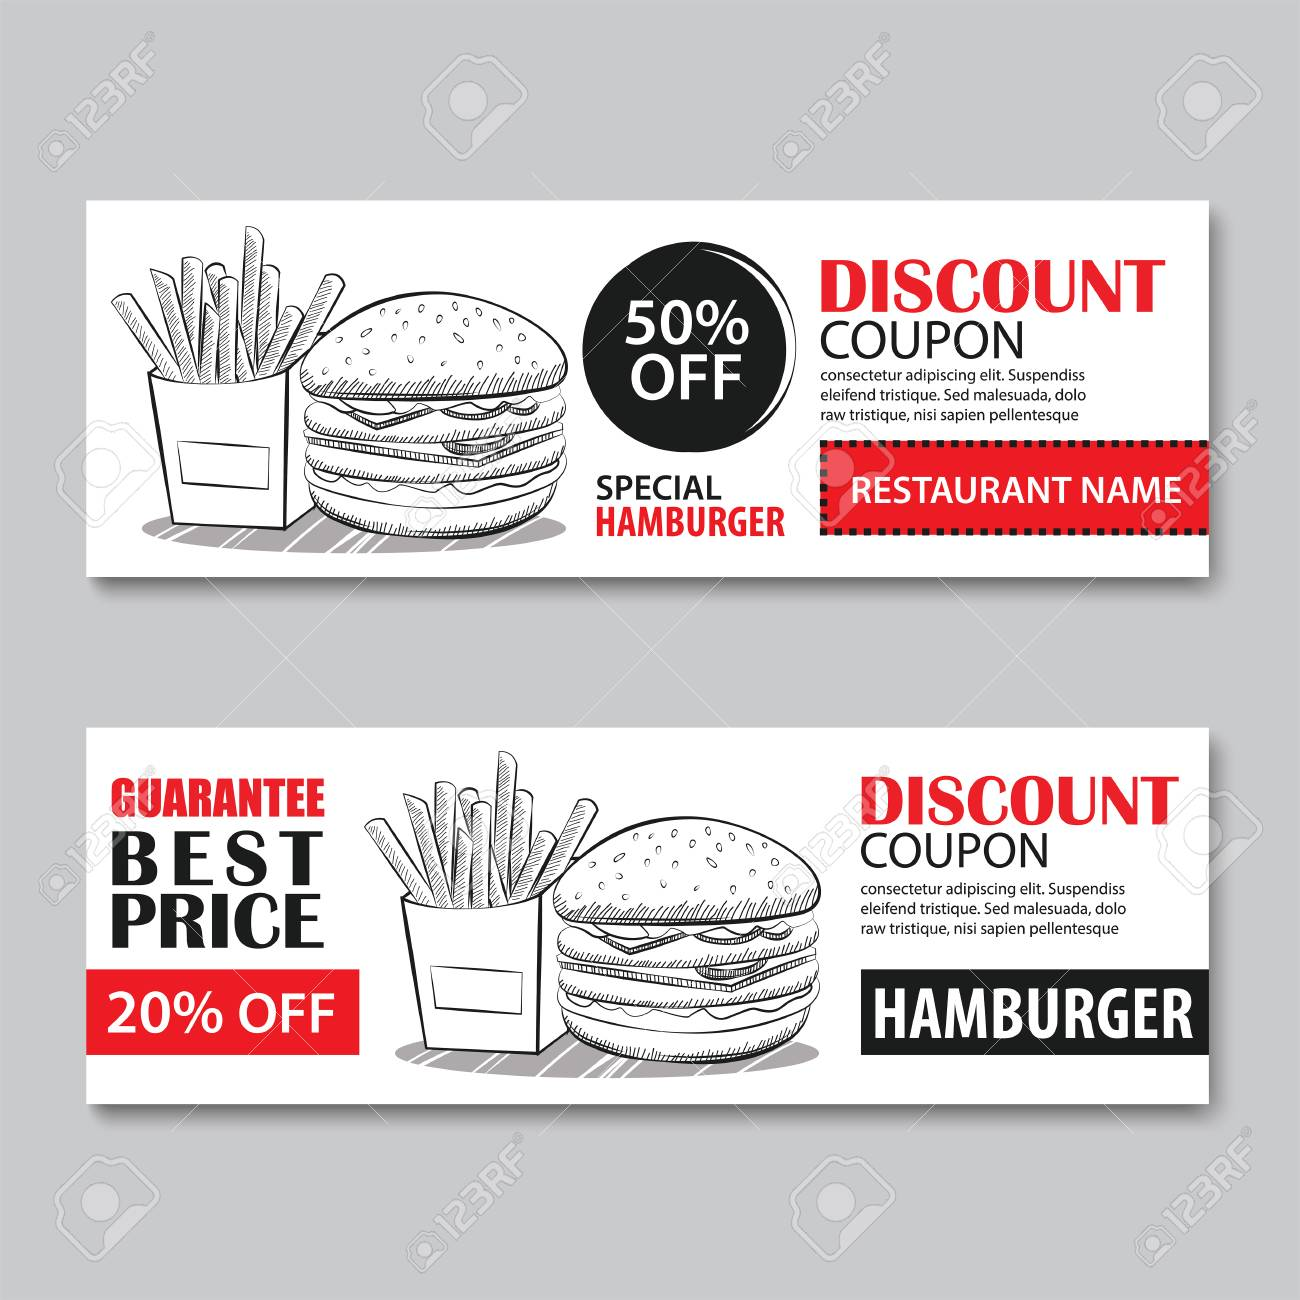 Fast Food Gift Voucher And Coupon Sale Discount Template Flat Royalty Free Cliparts Vectors And Stock Illustration Image 85404165